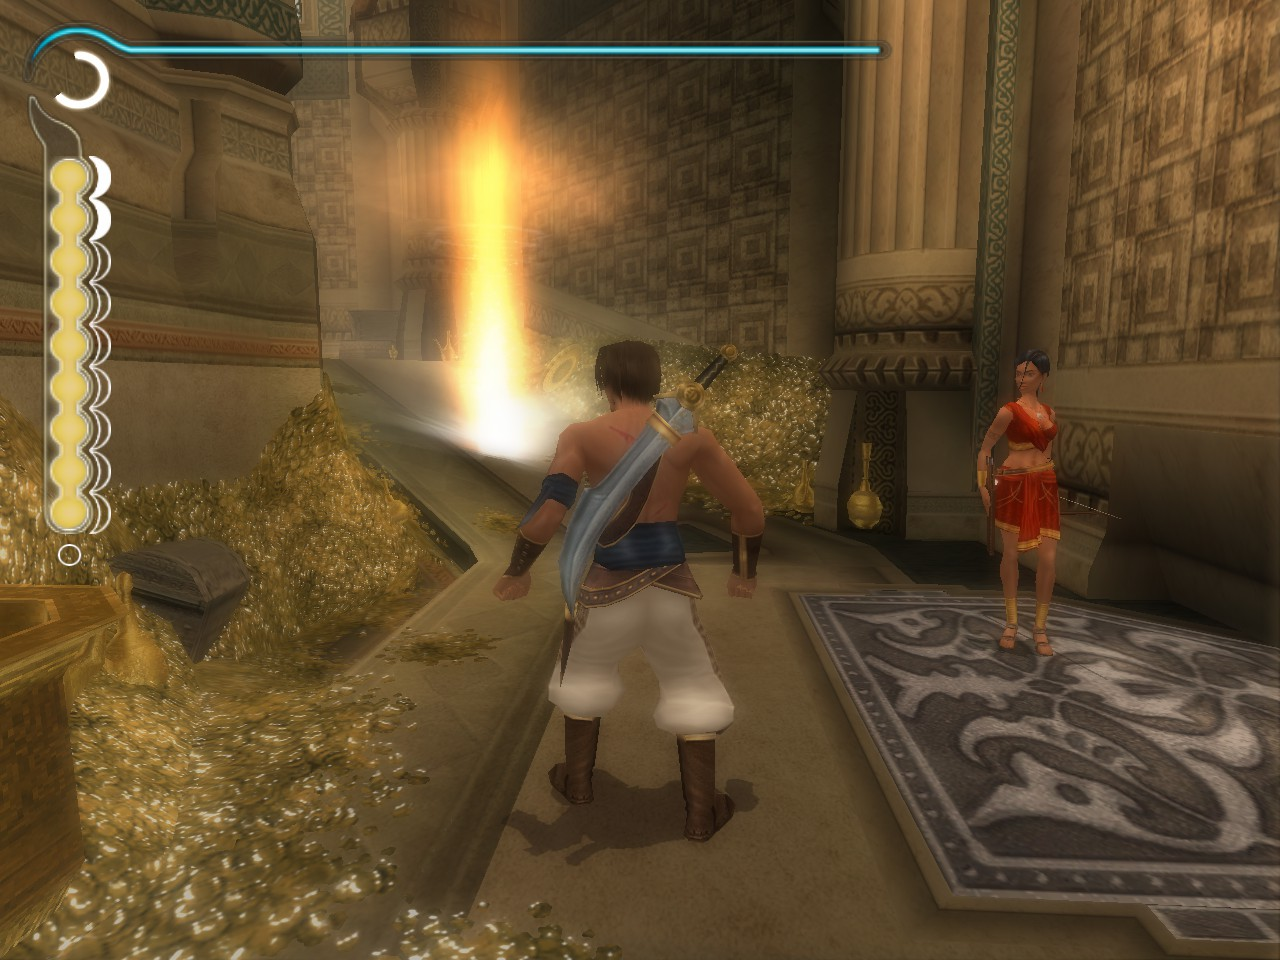 POP 2014-05-23 14-23-27-85.jpg - Prince of Persia: The Sands of Time